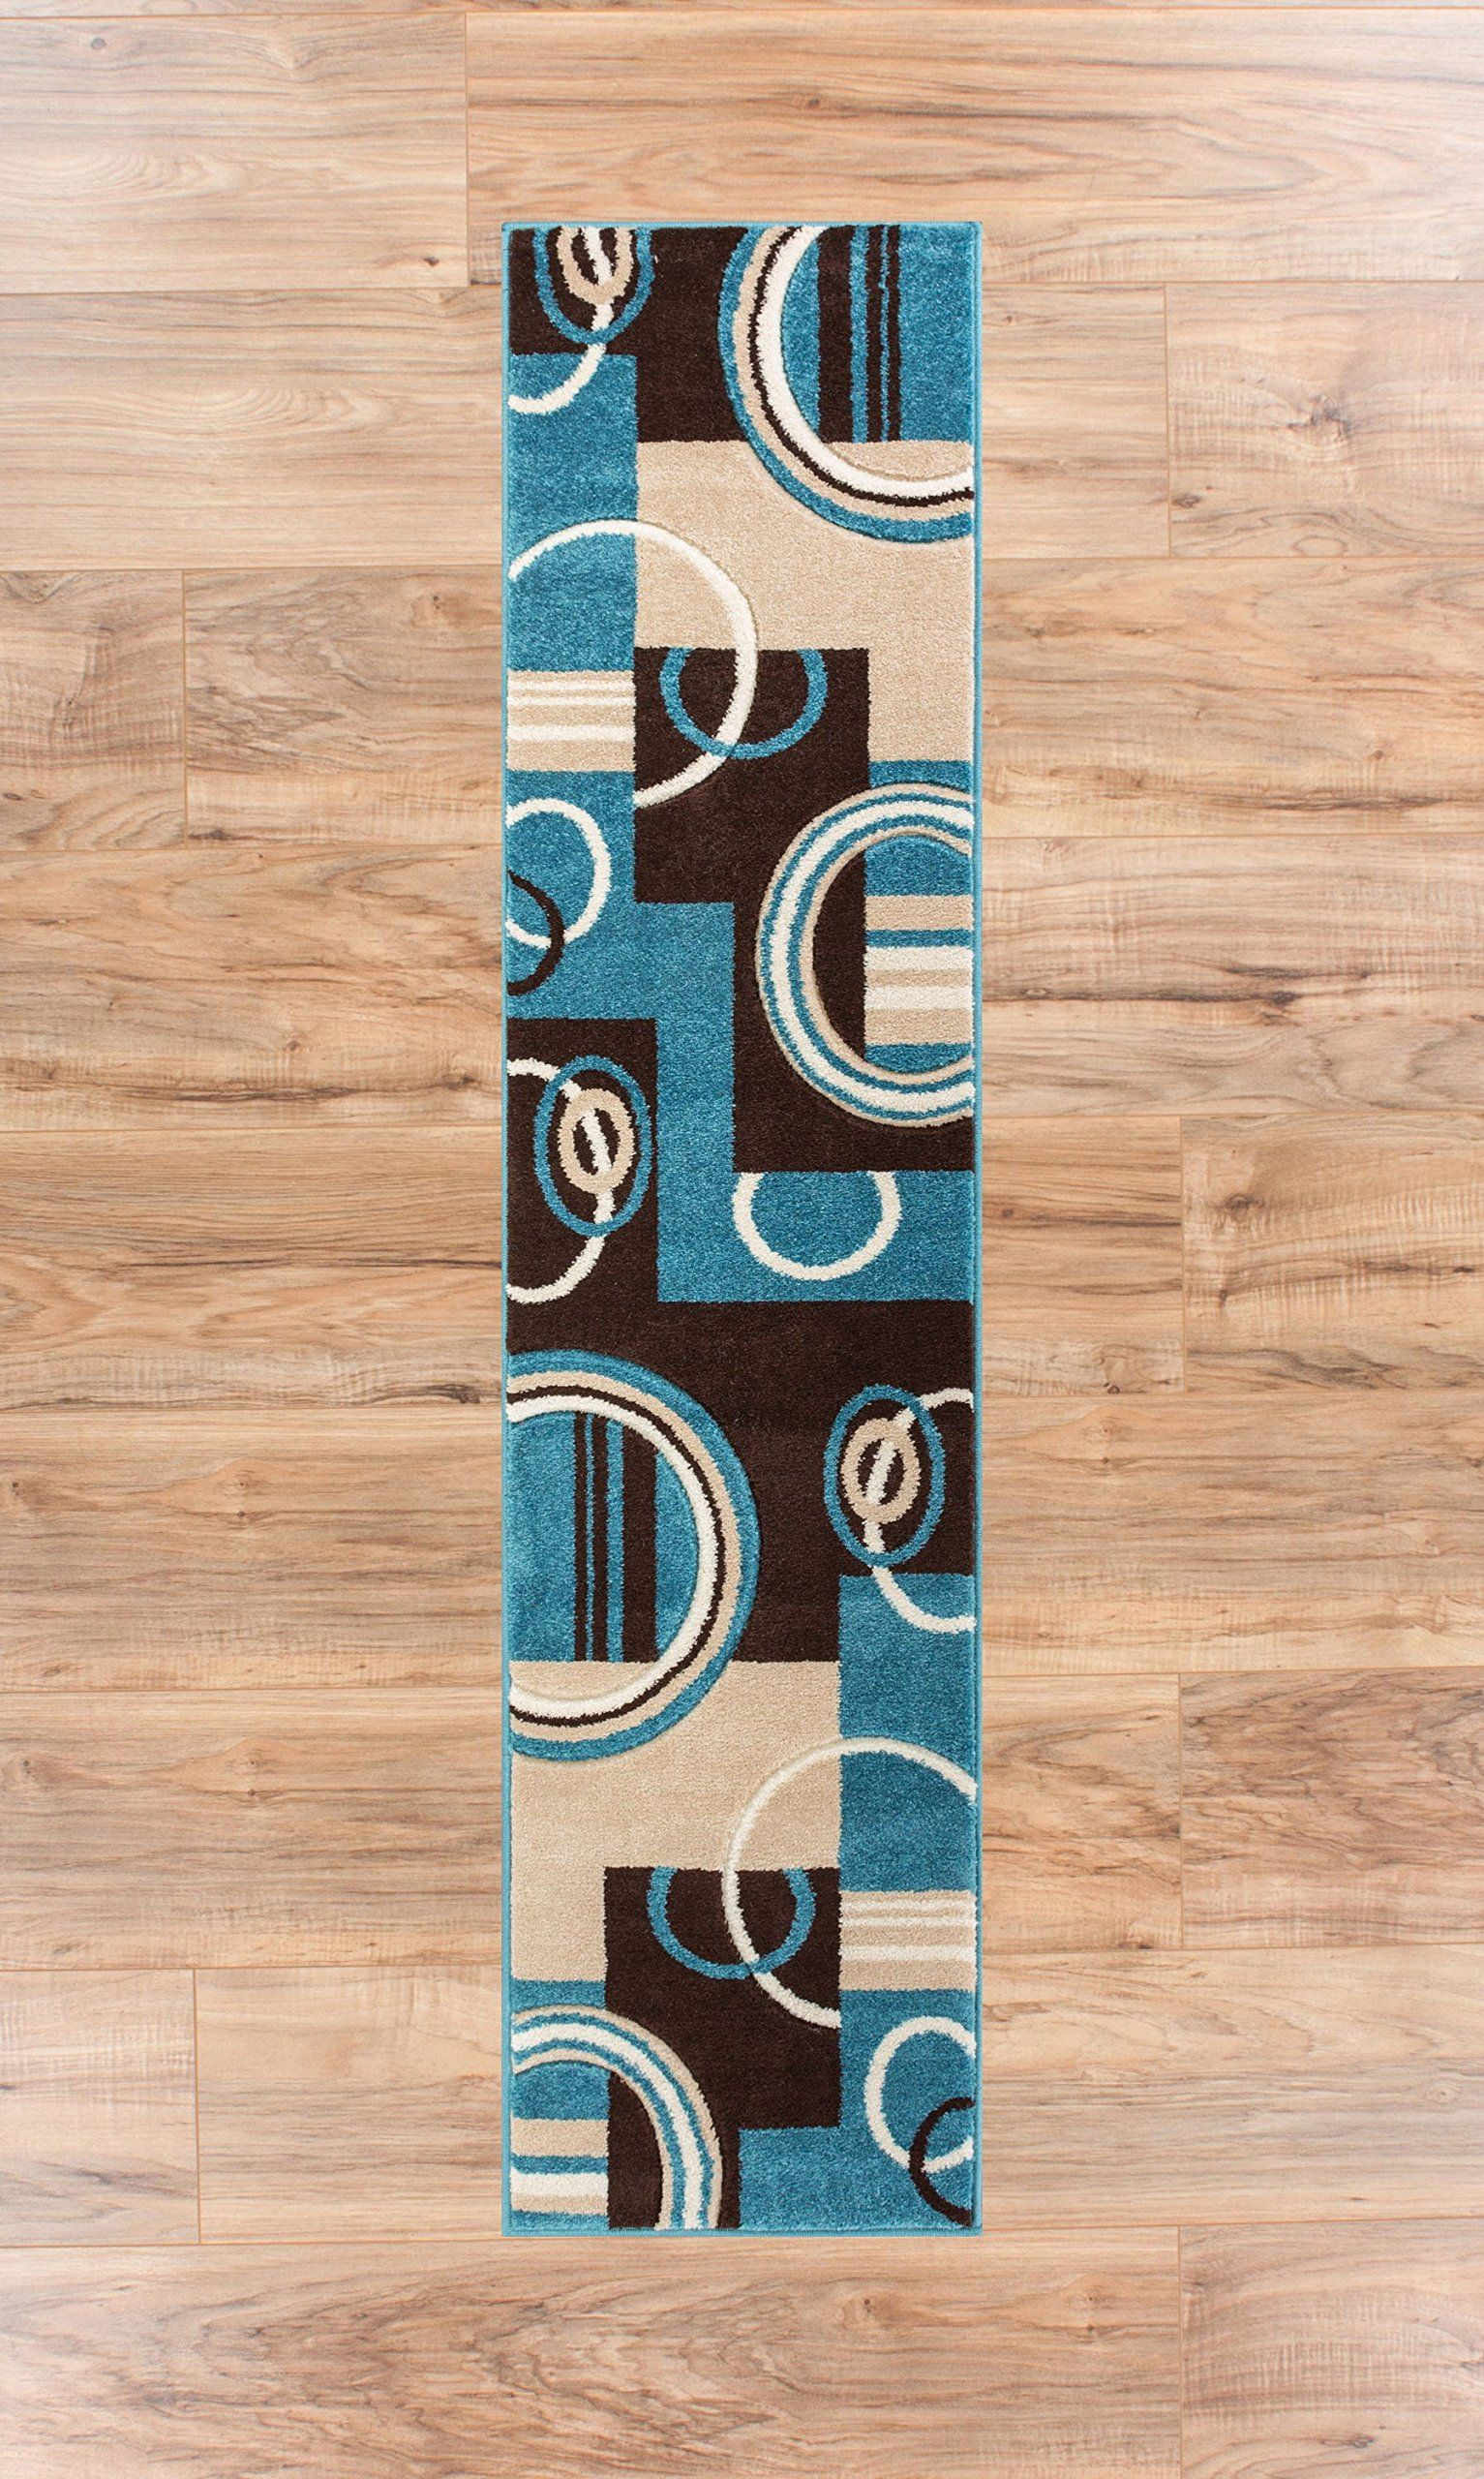 Echo Shapes Circles Blue Brown Modern Geometric Comfy Casual Hand Carved Runner Rug 2x7 2 X 7 Easy Clean Stain Fade Resistant Abstract